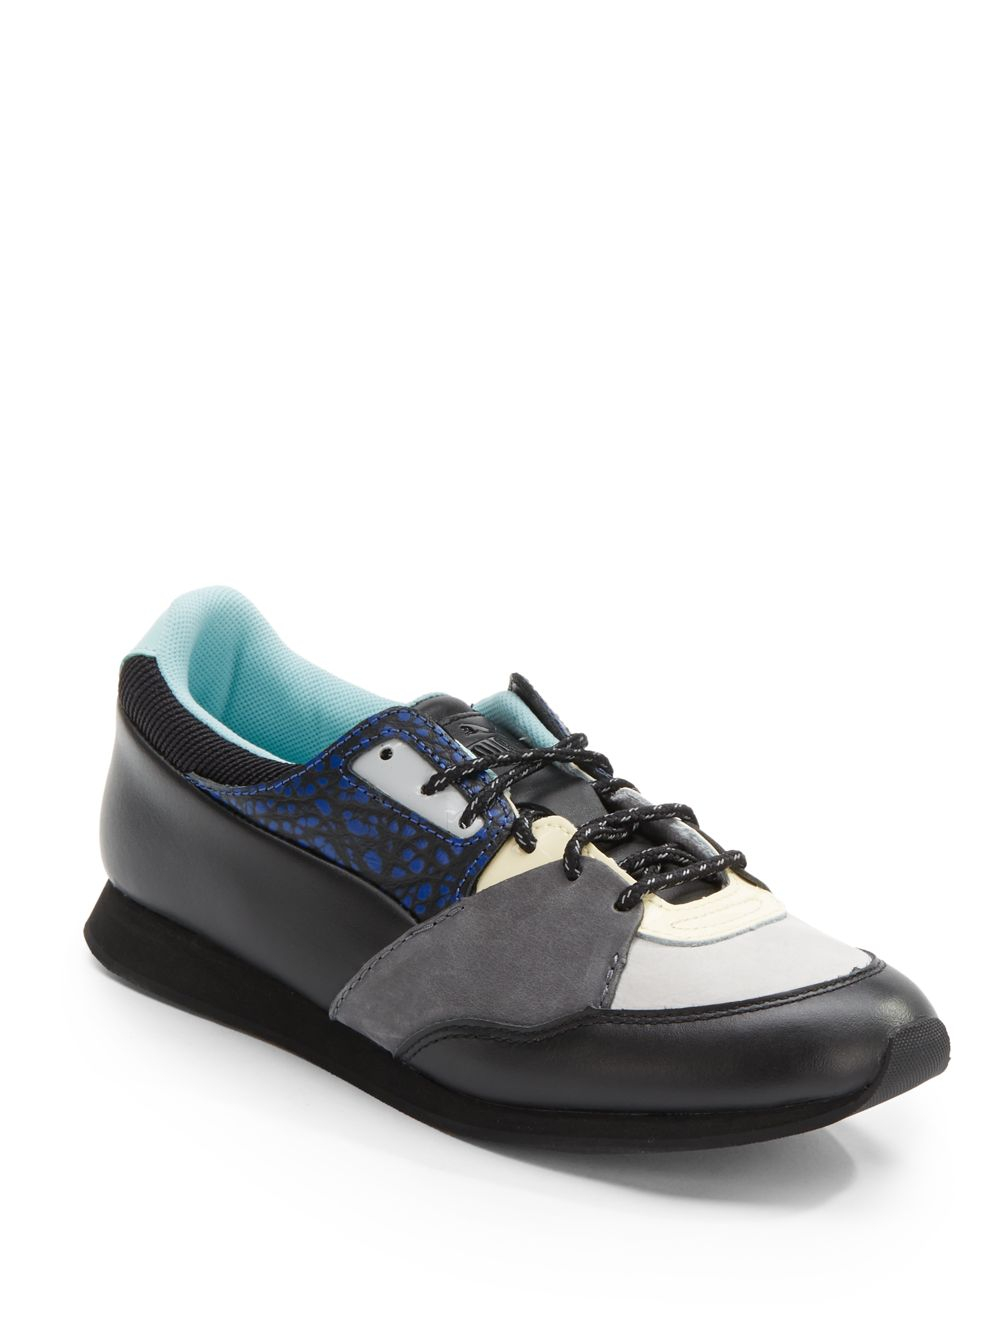 Alexander Shoes Men